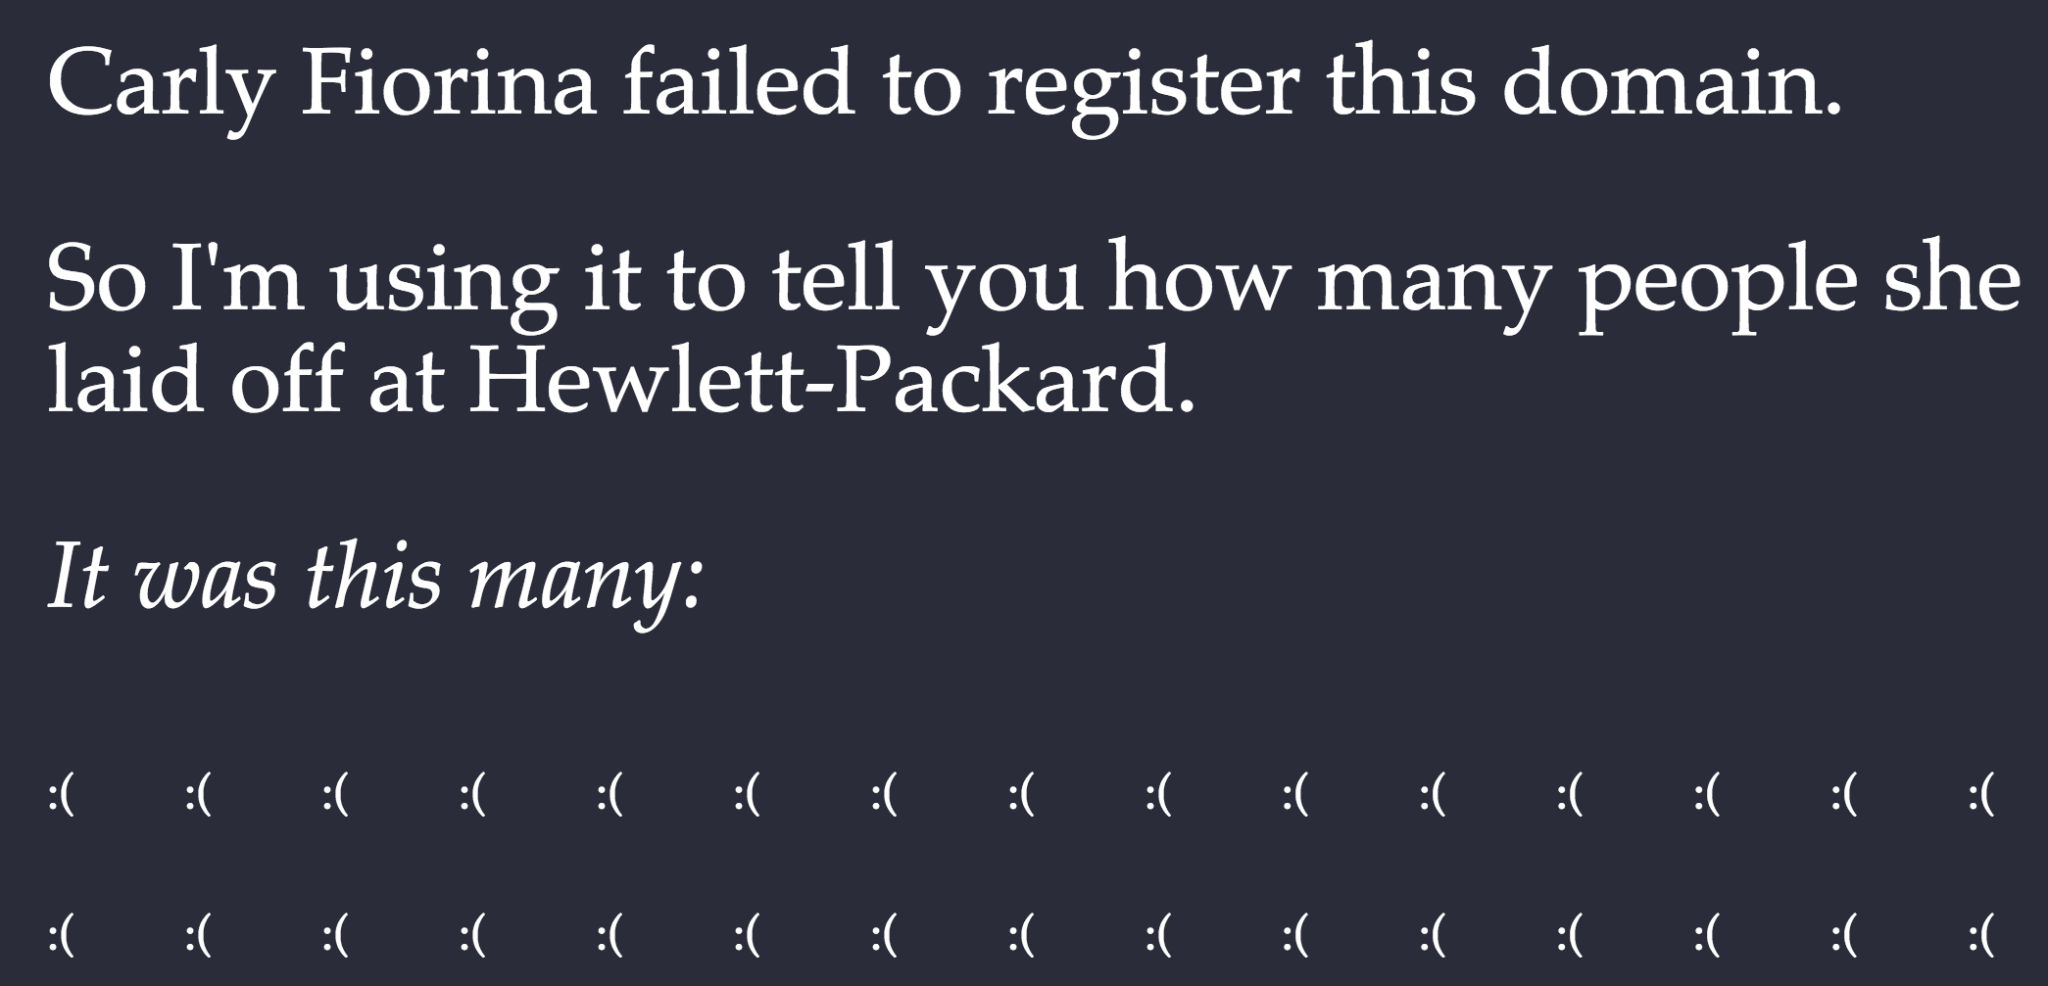 Presidential Candidate Carly Fiorina Fails to Register Domain Name, Gets Masterfully Trolled